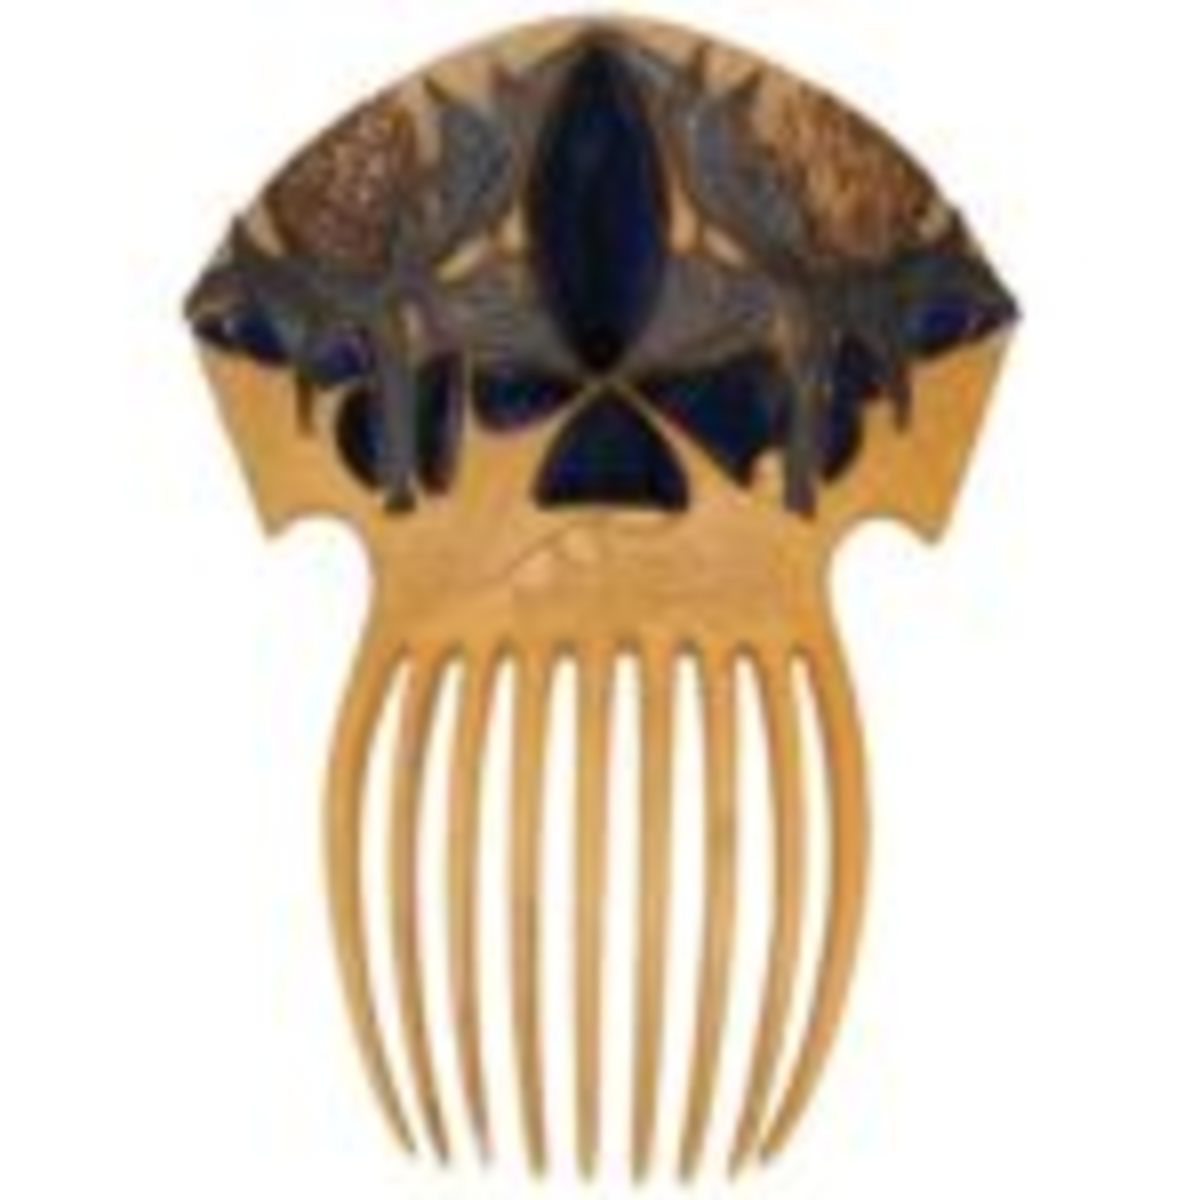 René Lalique (1860-1945) Sea Holly hair comb 3 3/4 inches wide by 5 1/4 inches long, sold for $170,000 through Treadway Toomey Auctions. Courtesy of Treadway Toomey Auctions, Oak Park, Illinois.